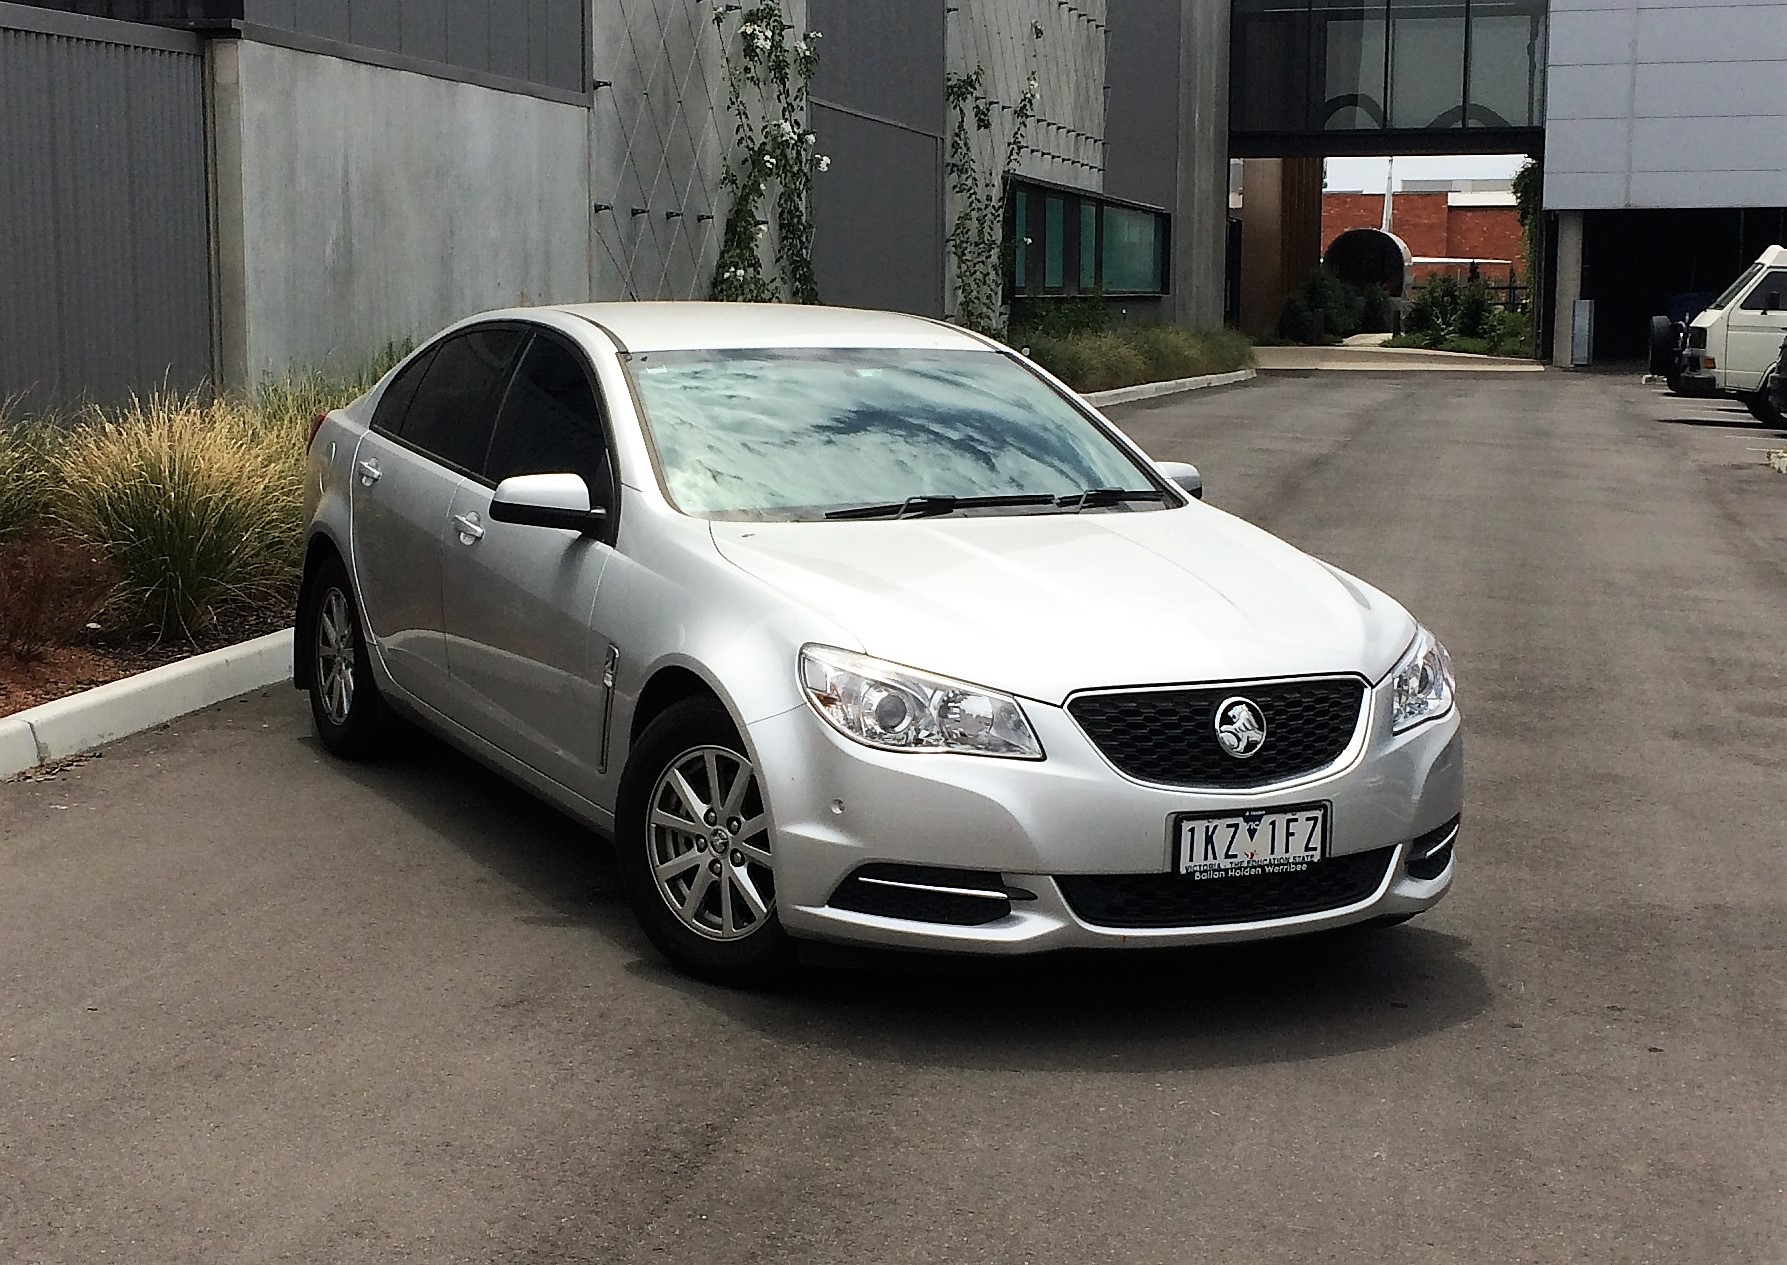 Picture of Sahil's 2014 Holden Evoke